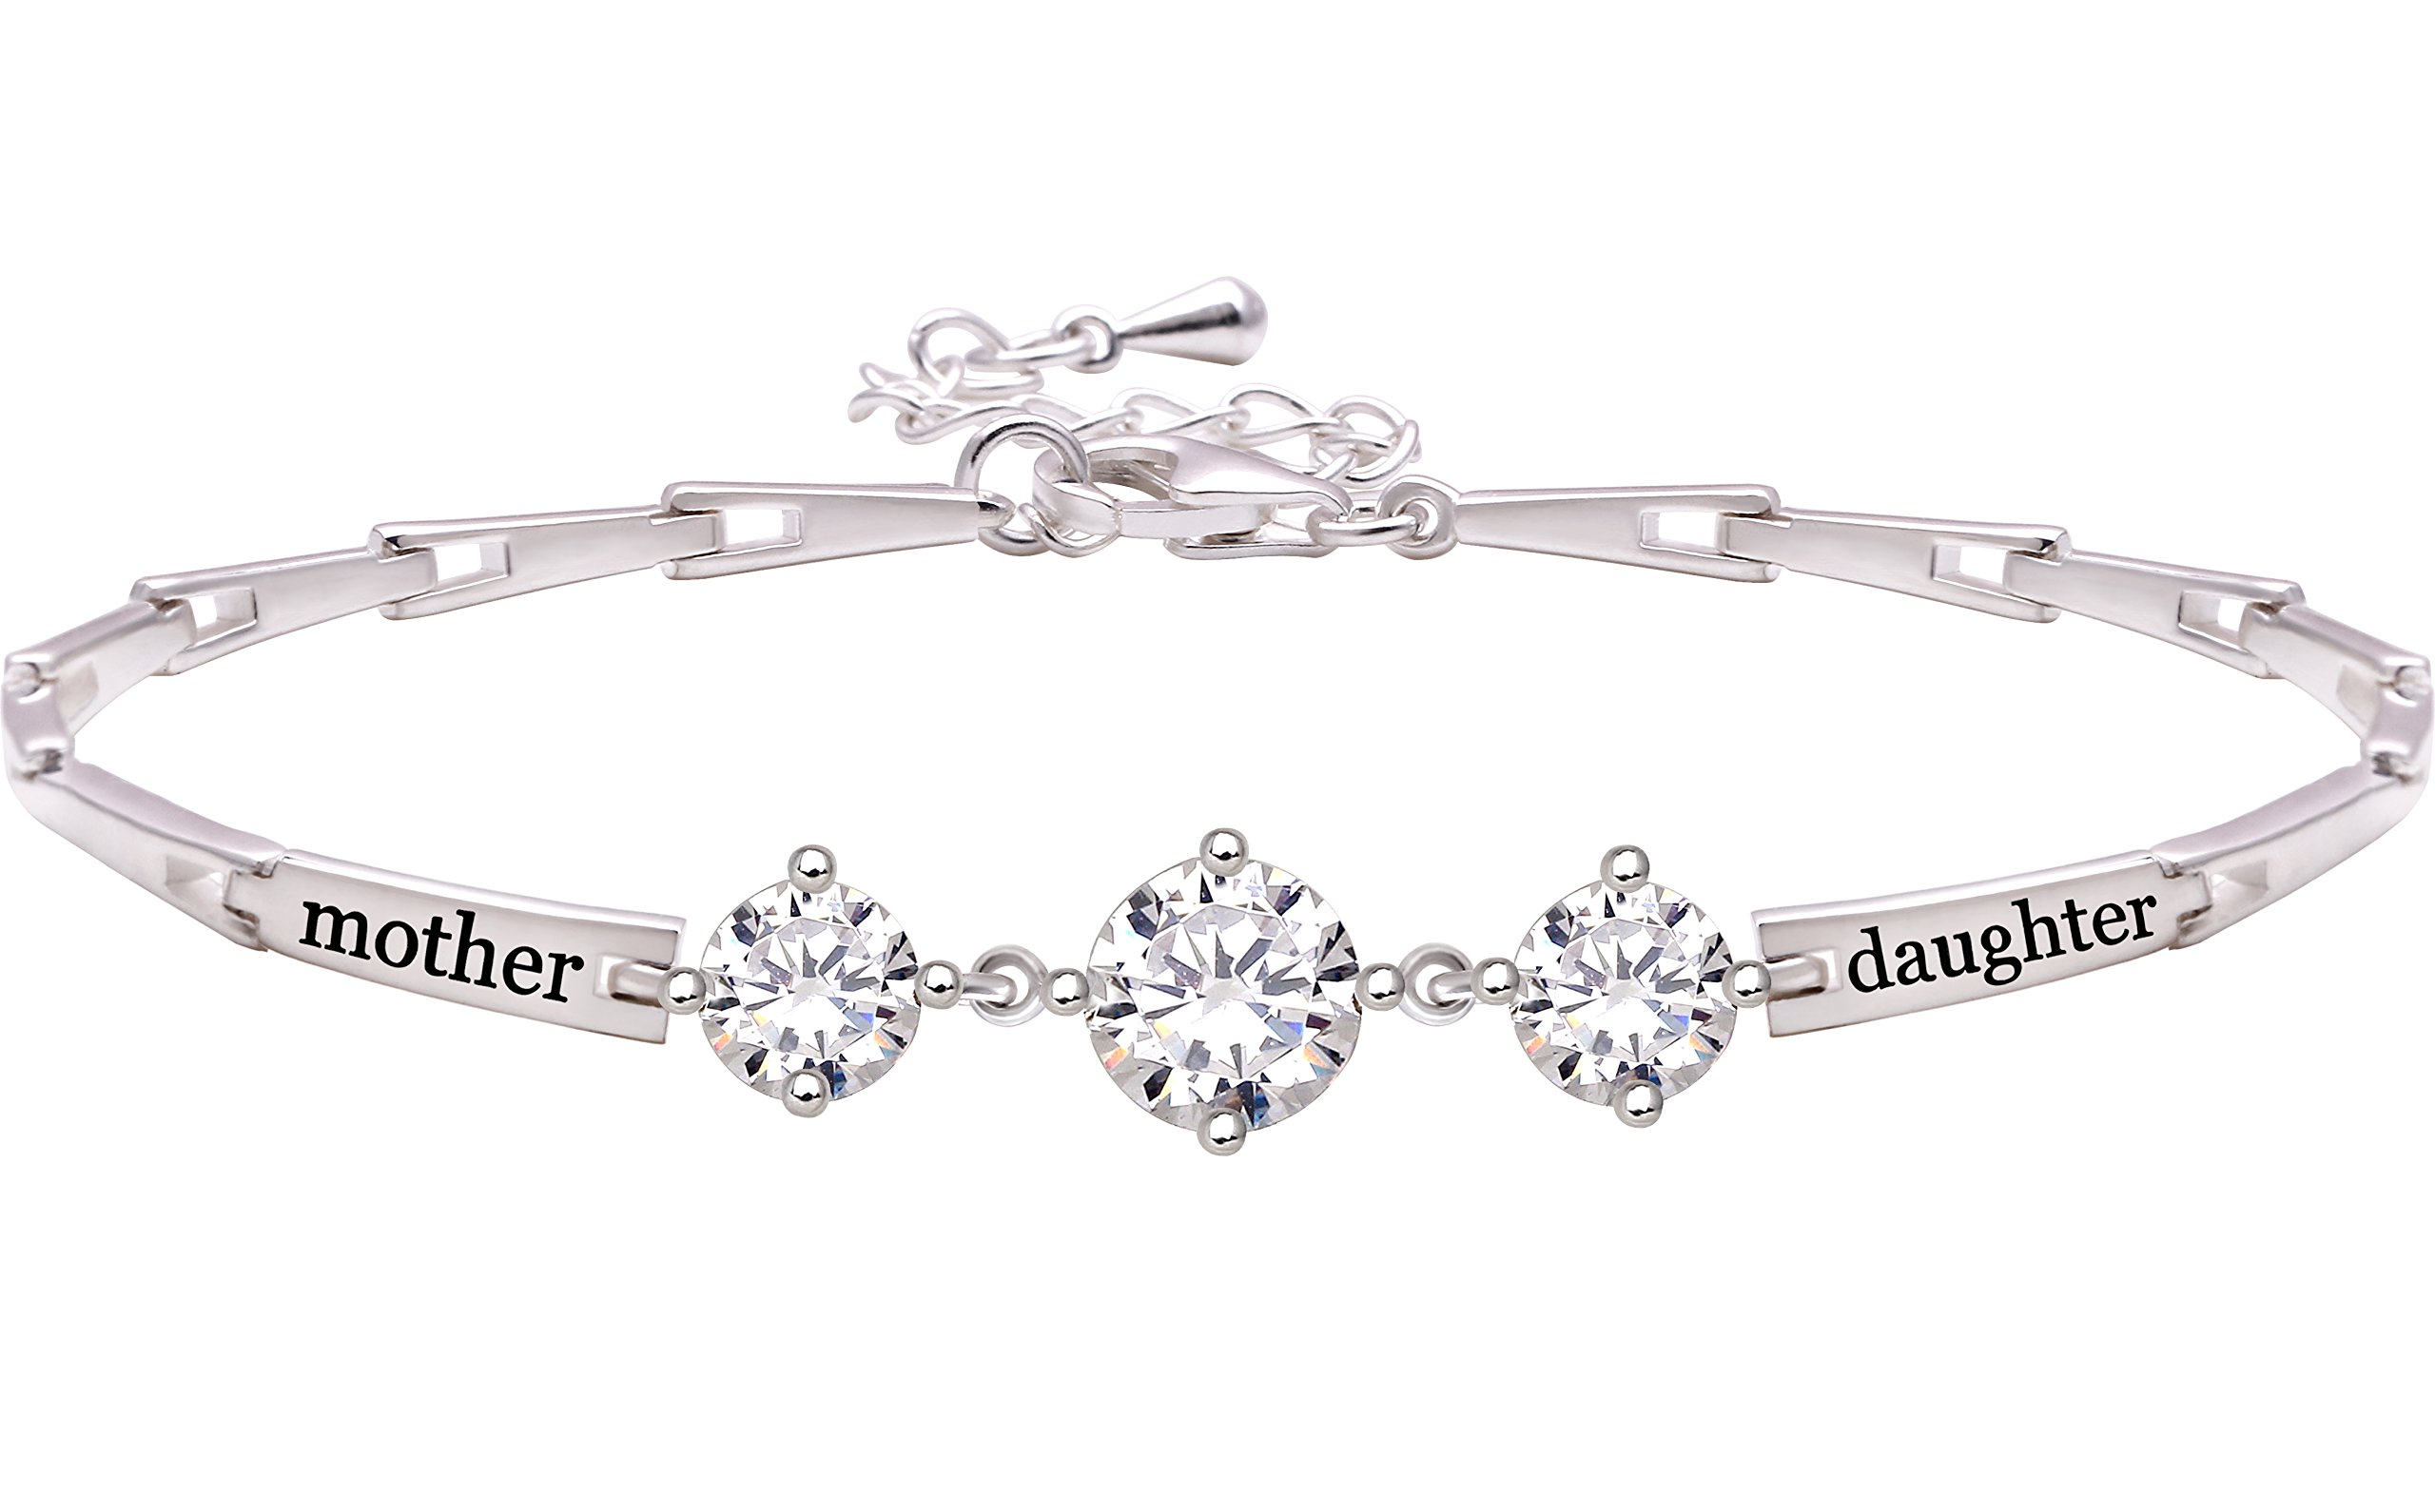 ALOV Jewelry Sterling Silver Mother Daughter Cubic Zirconia Bracelet by ALOV